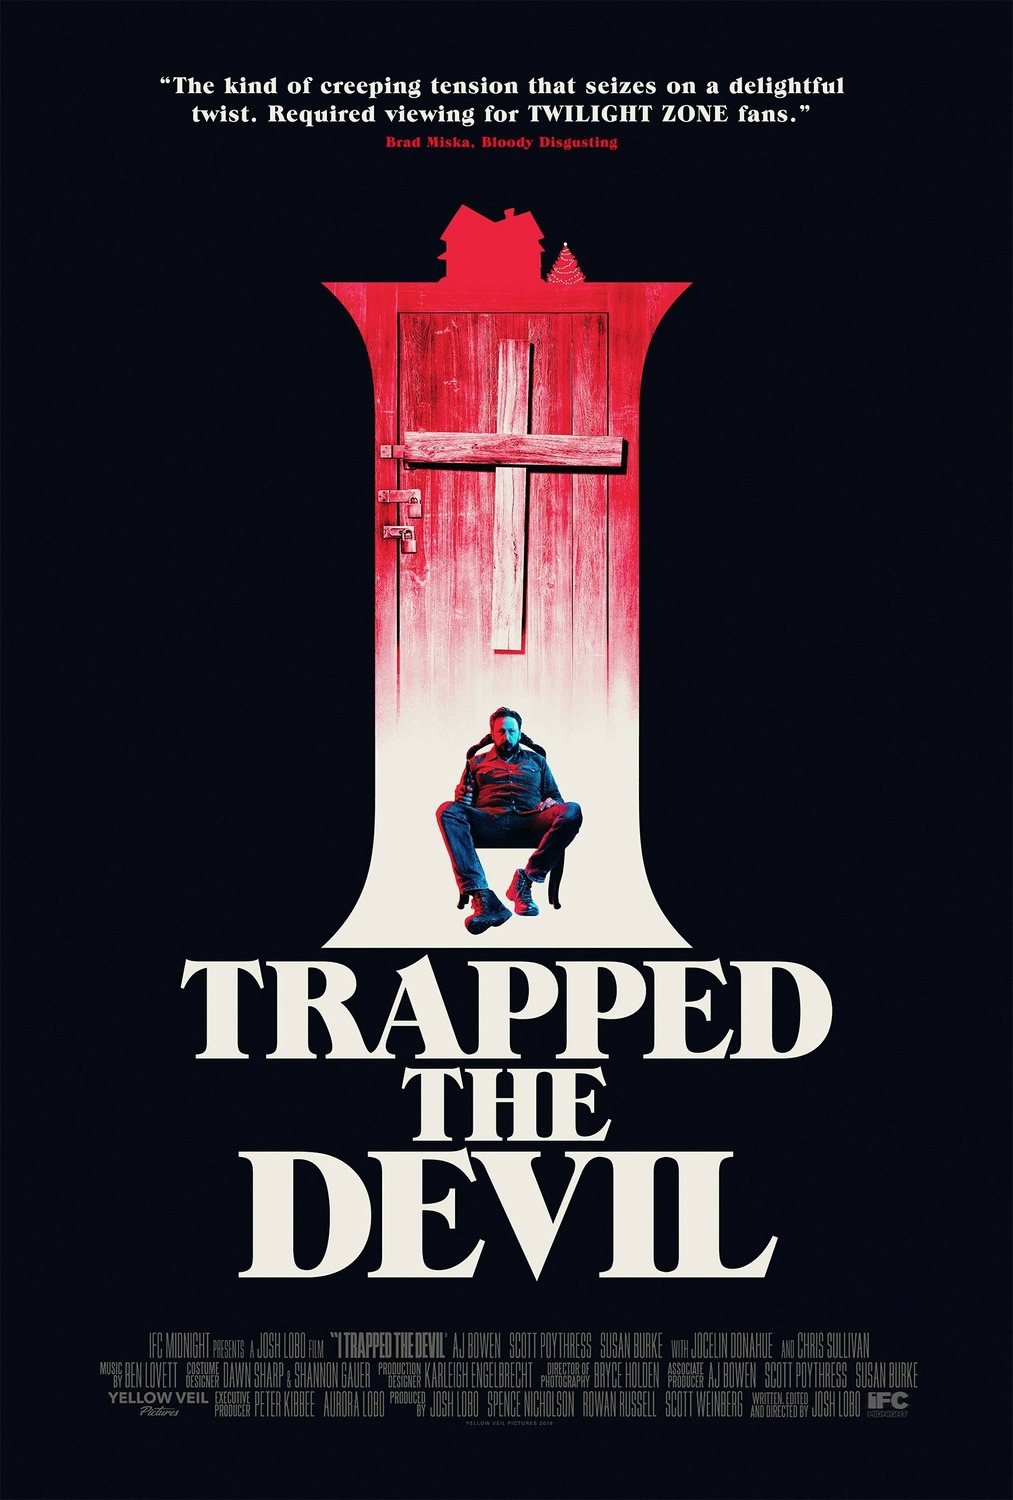 Extra Large Movie Poster Image for I Trapped the Devil